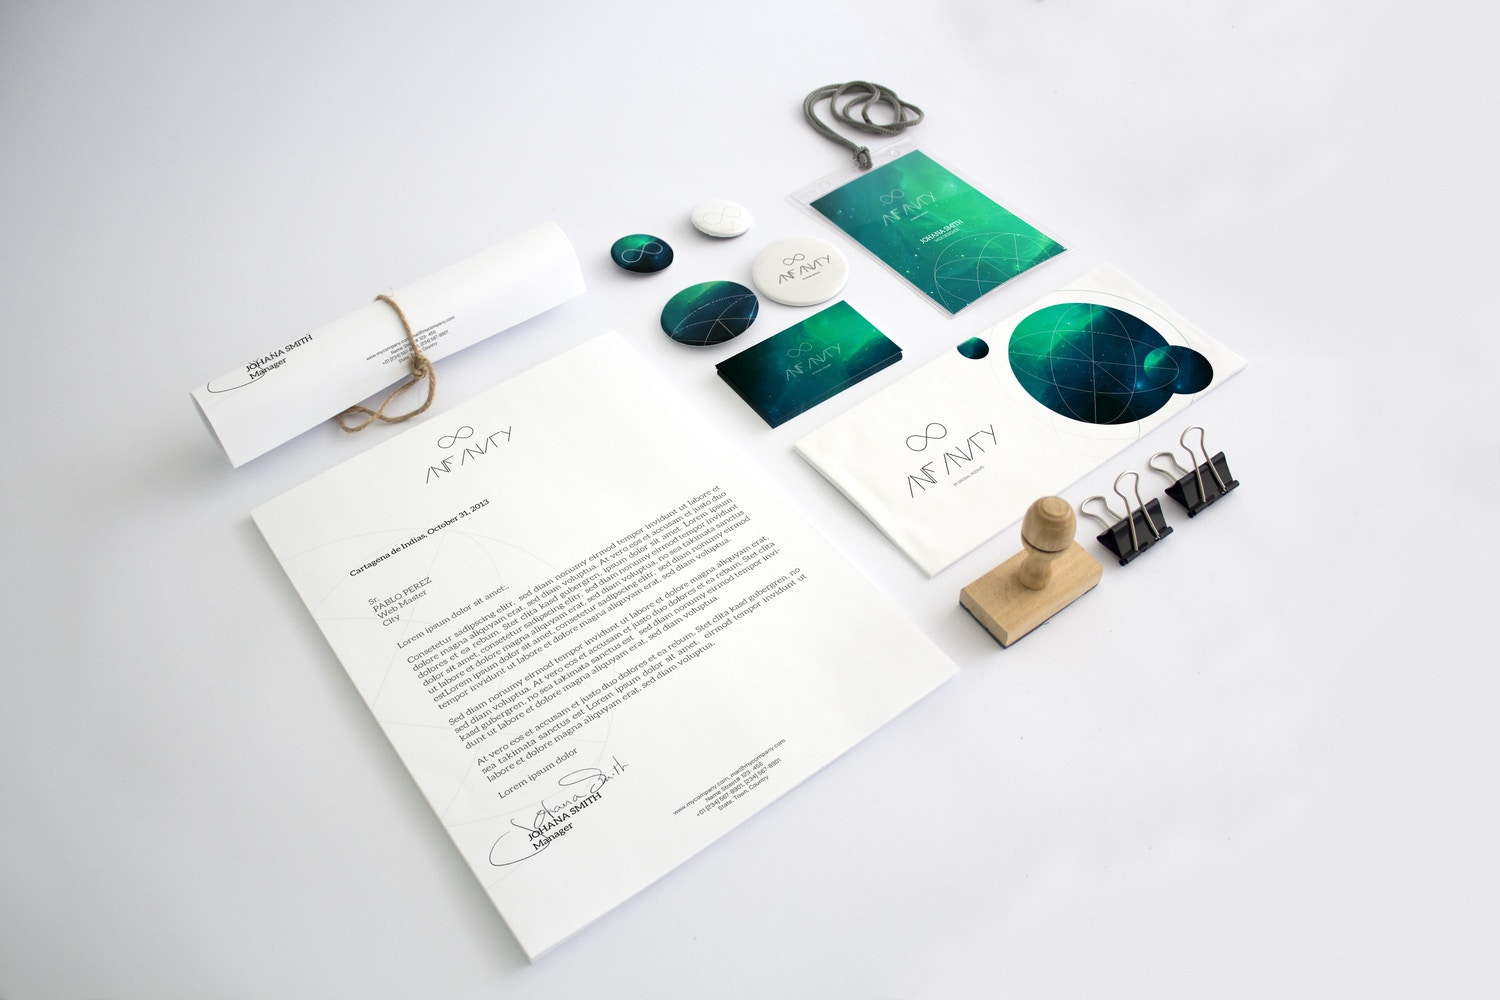 Stationery Mockup 5 by Original Mockups on Original Mockups